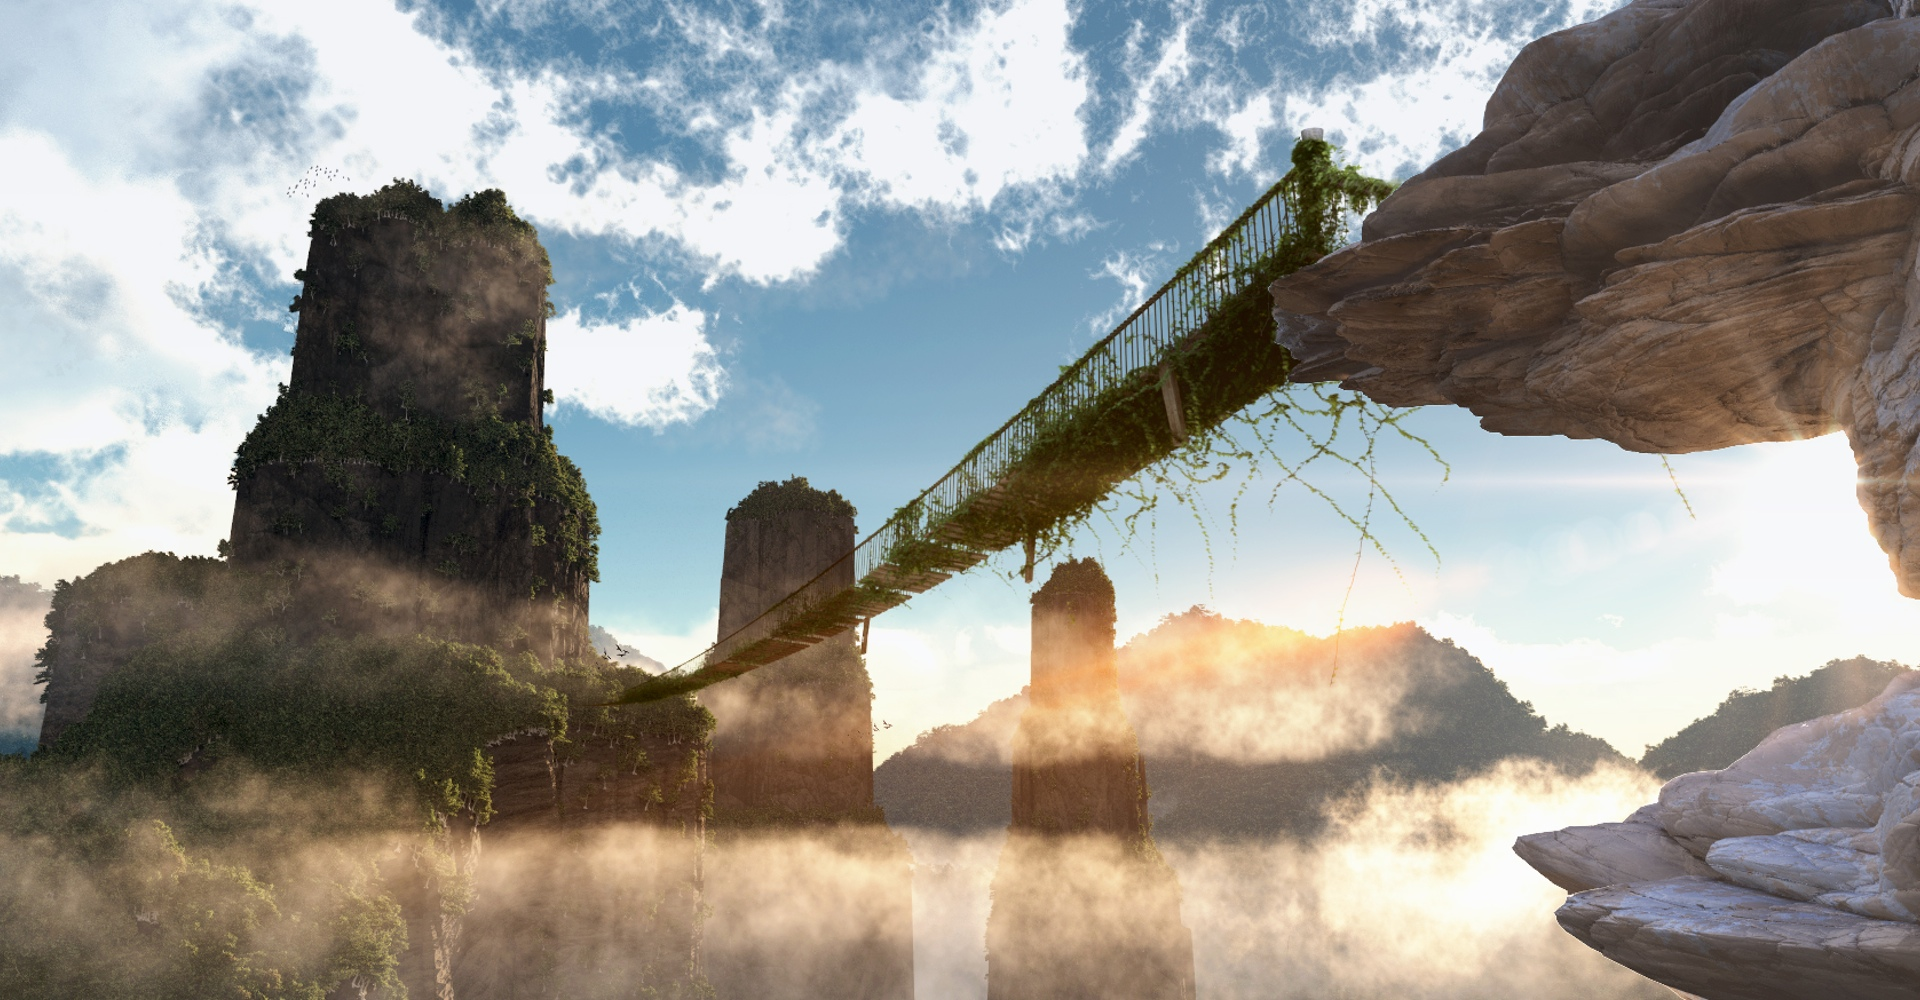 Jungle Bridge Rendering